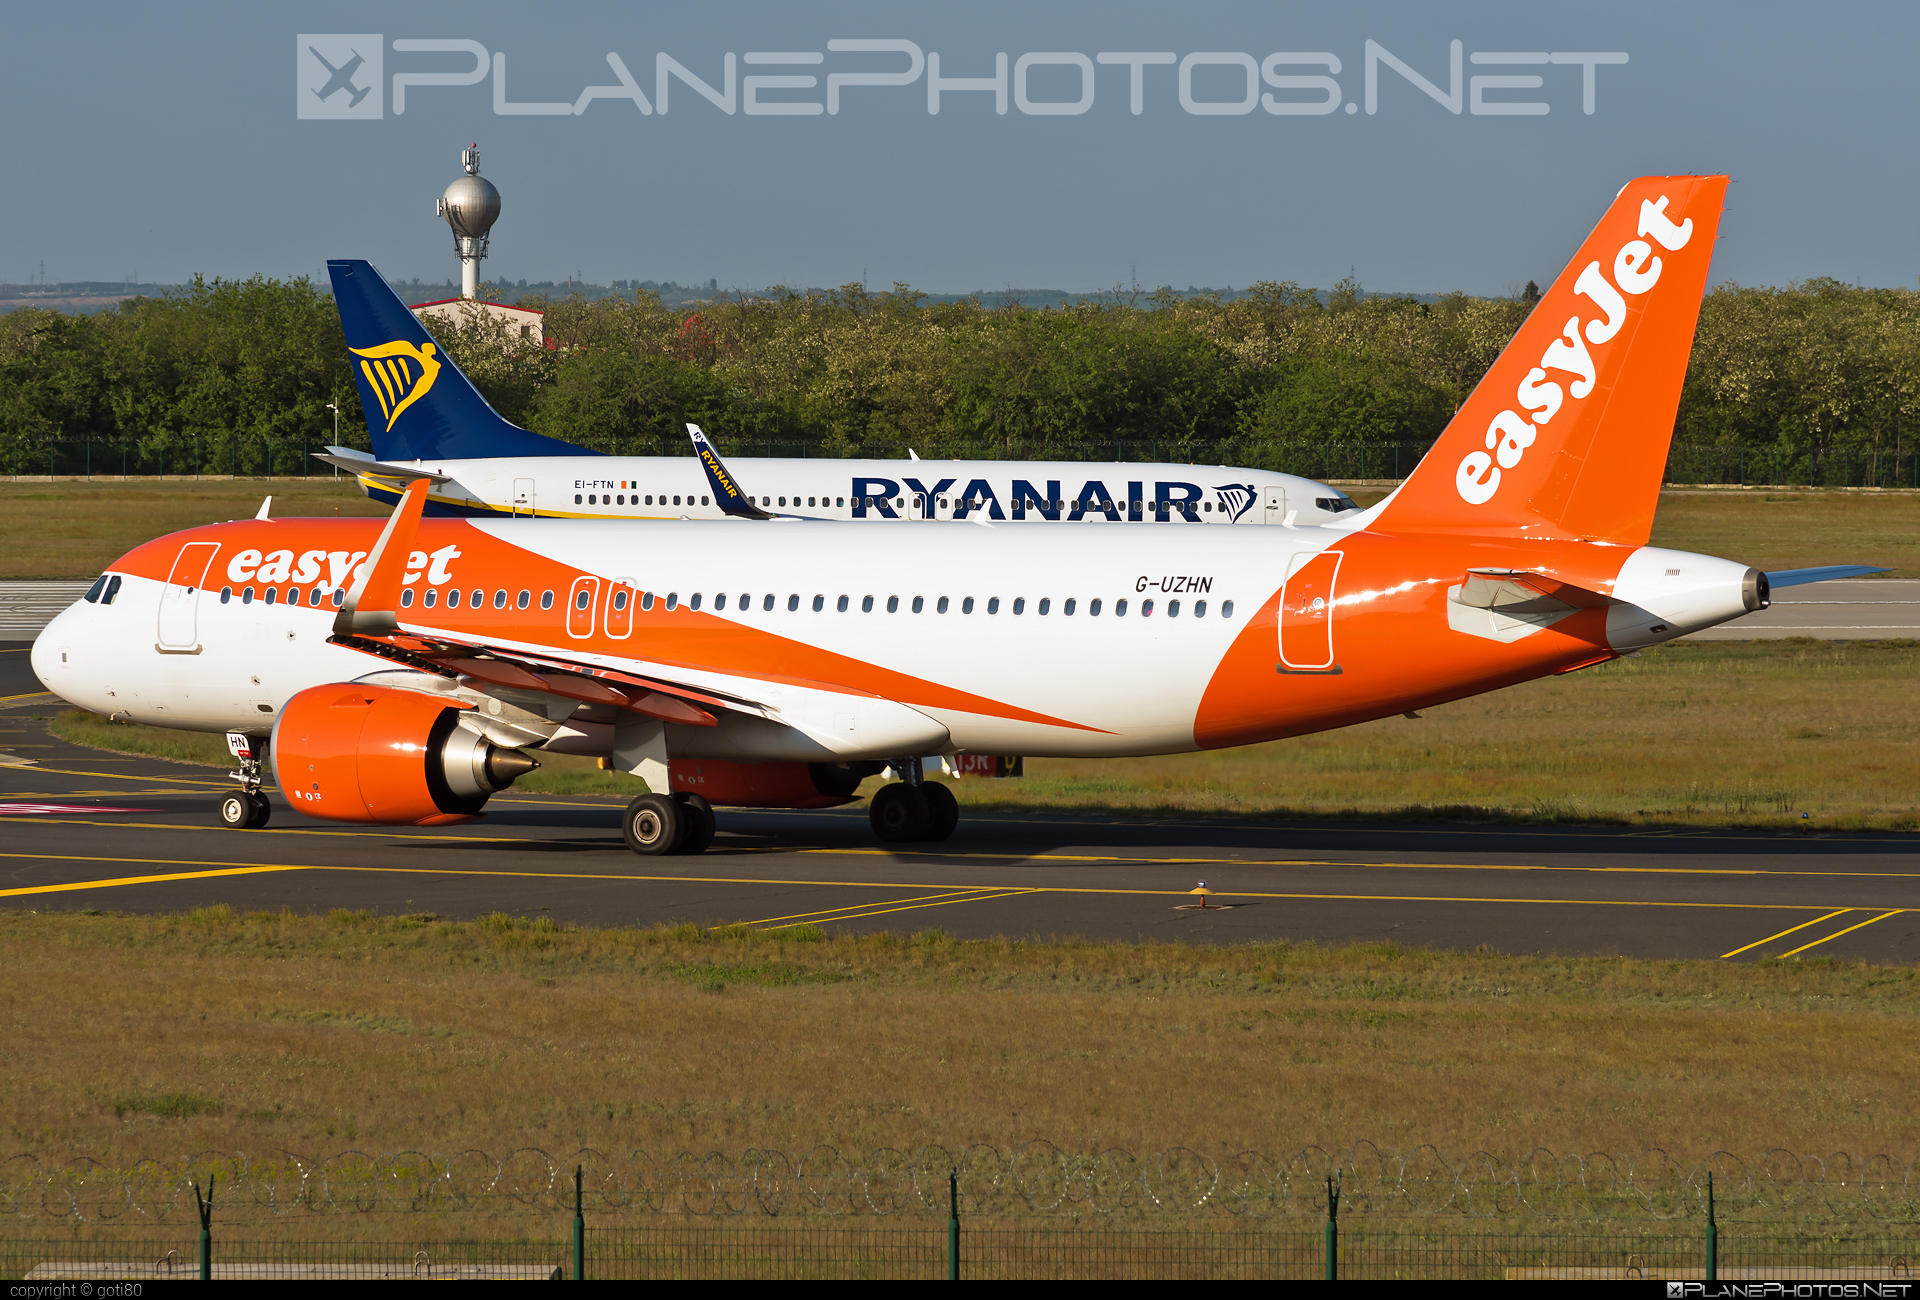 Airbus A320-251N - G-UZHN operated by easyJet #a320 #a320family #a320neo #airbus #airbus320 #easyjet